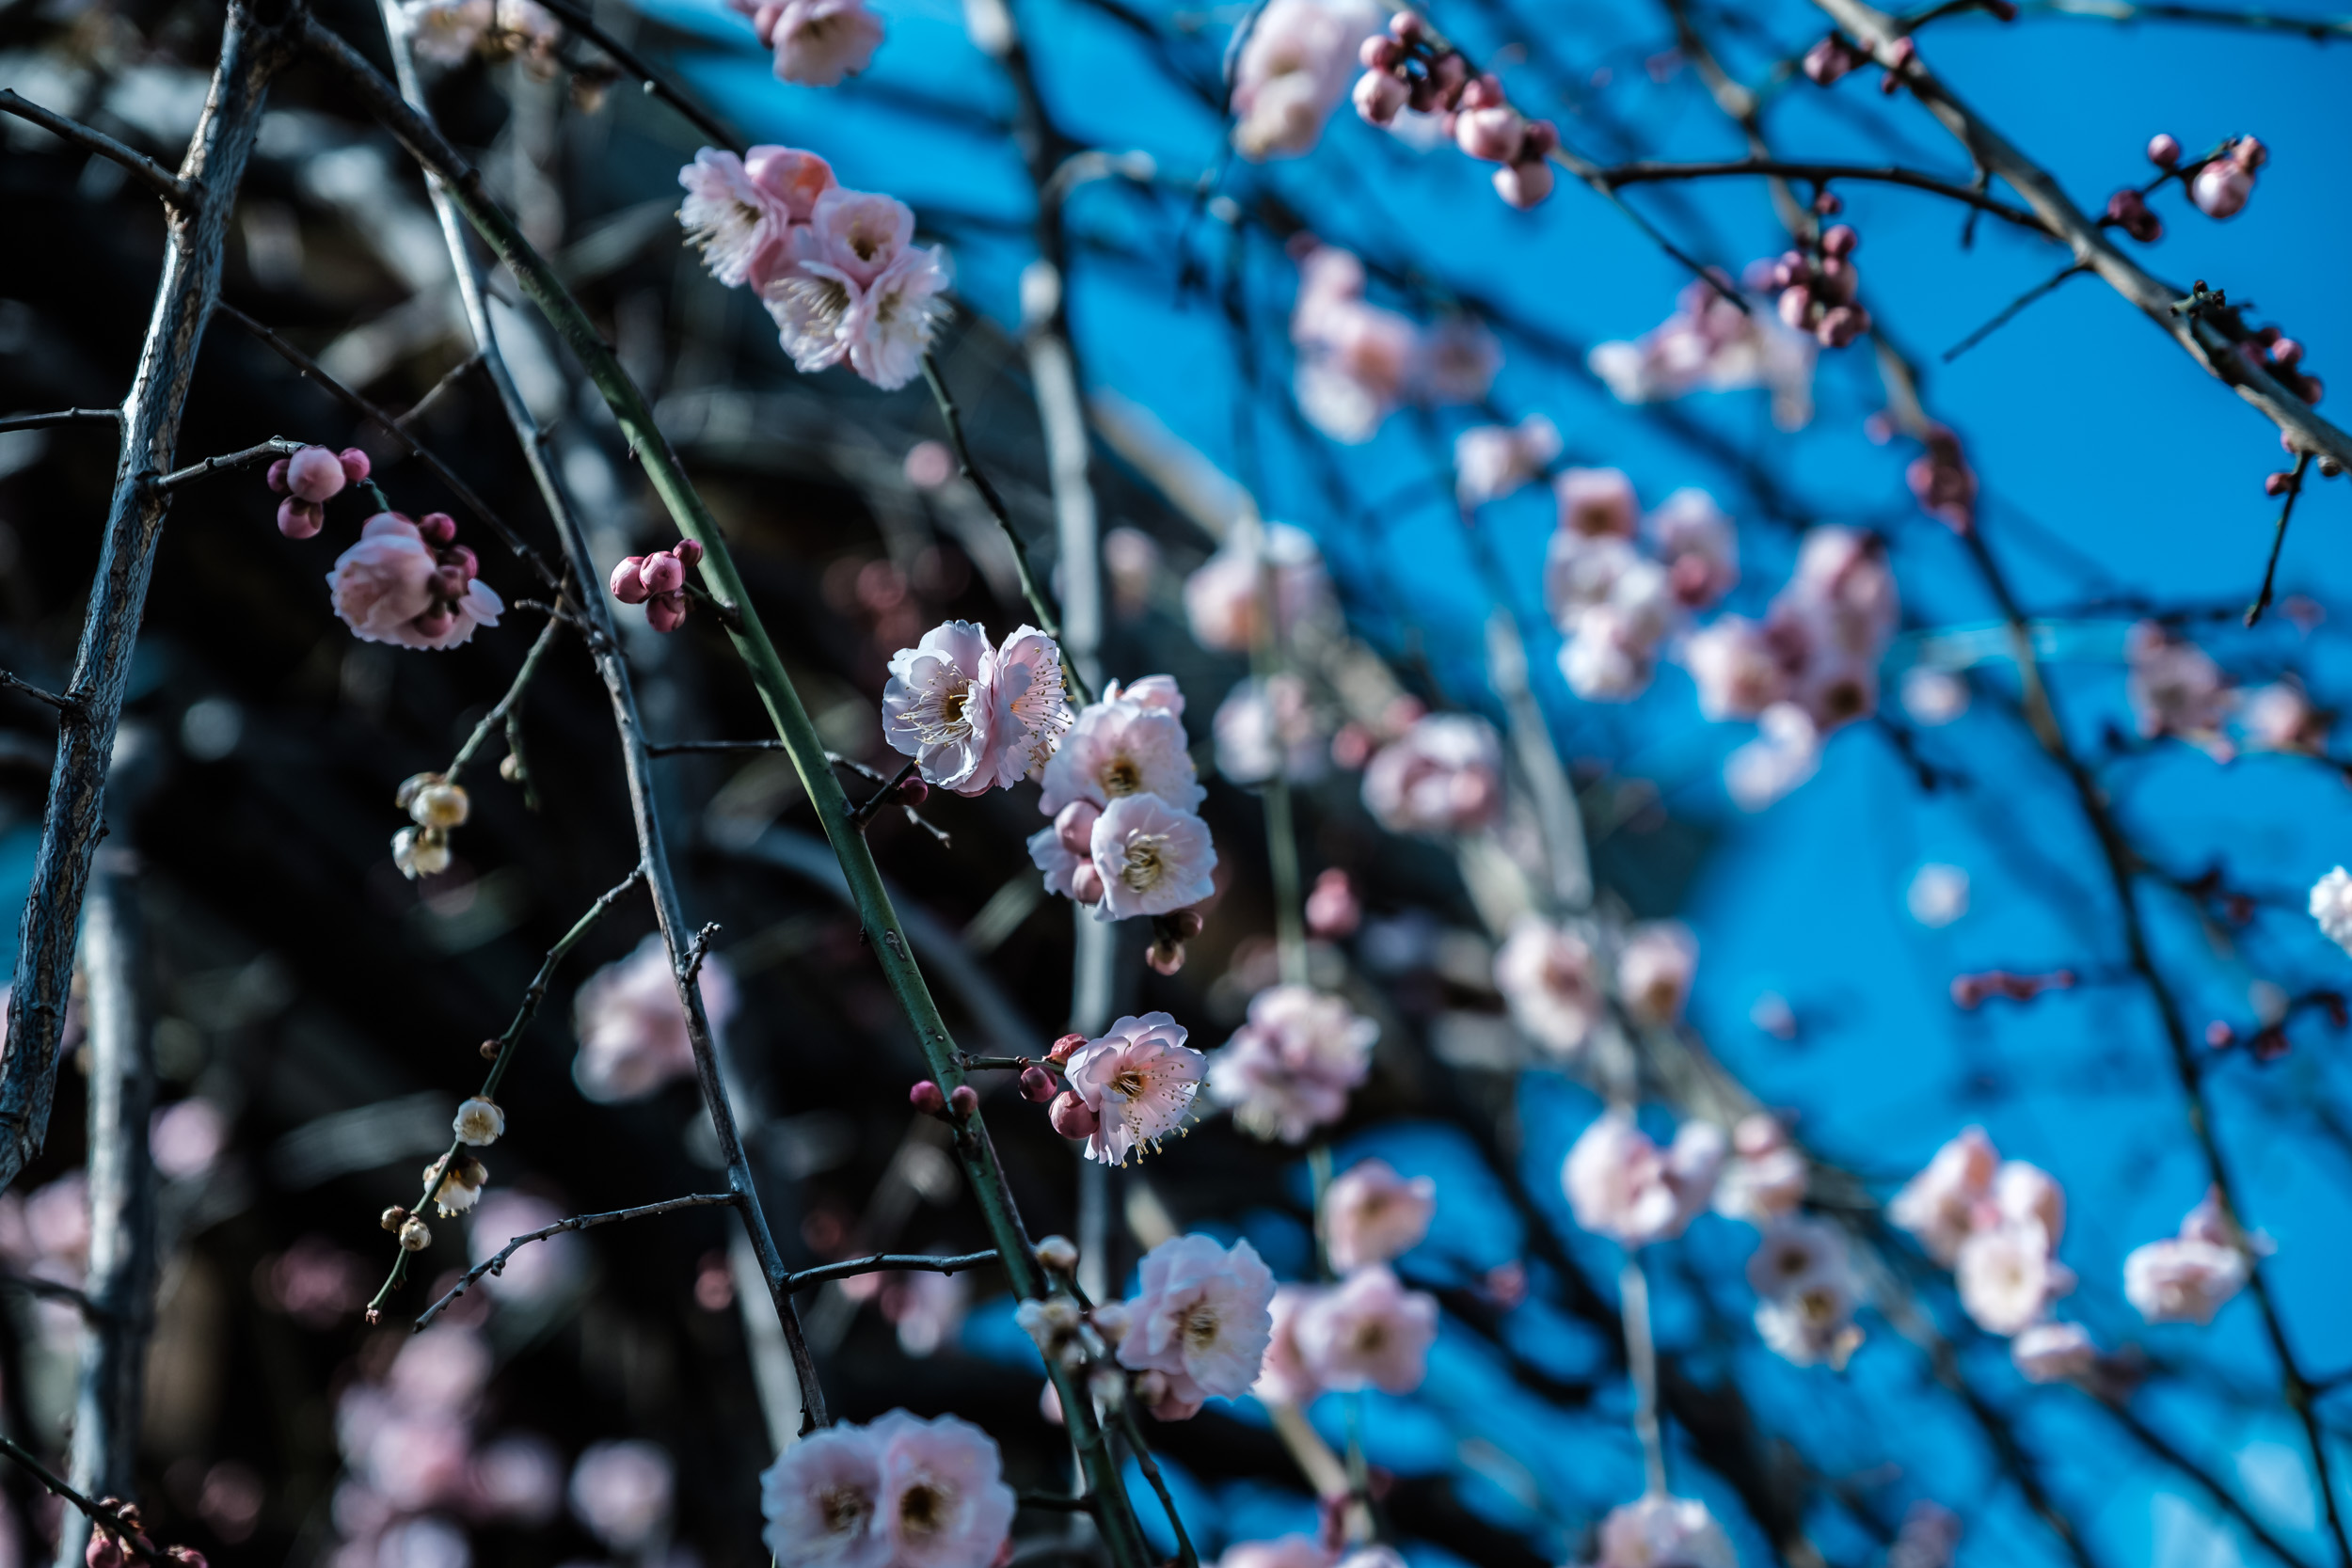 Some plum blossoms in bloom and some not even close